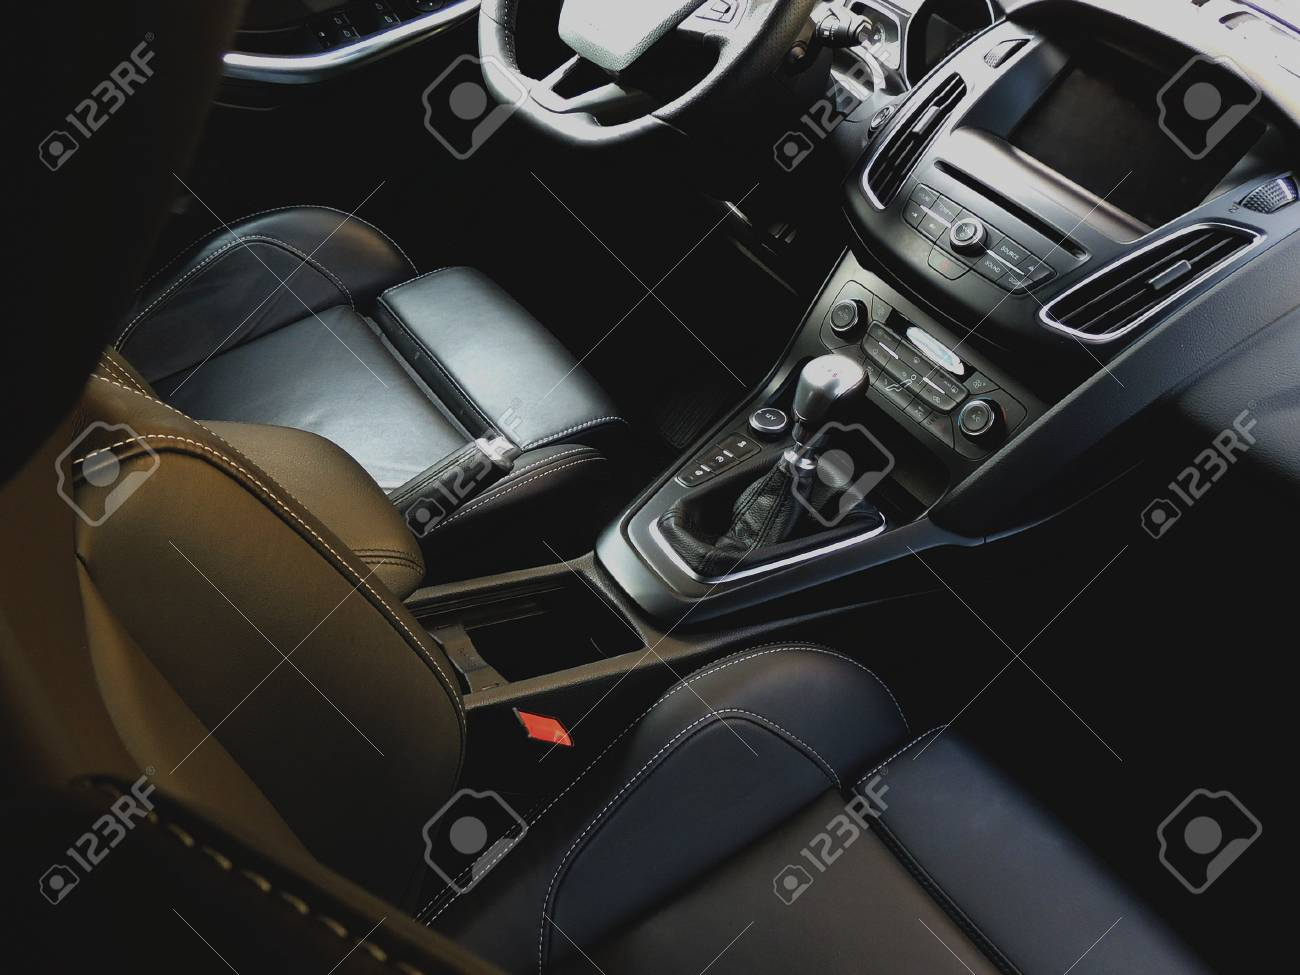 Car Leather Upholstery >> Upper View On The Premium Car Interior With Leather Upholstery